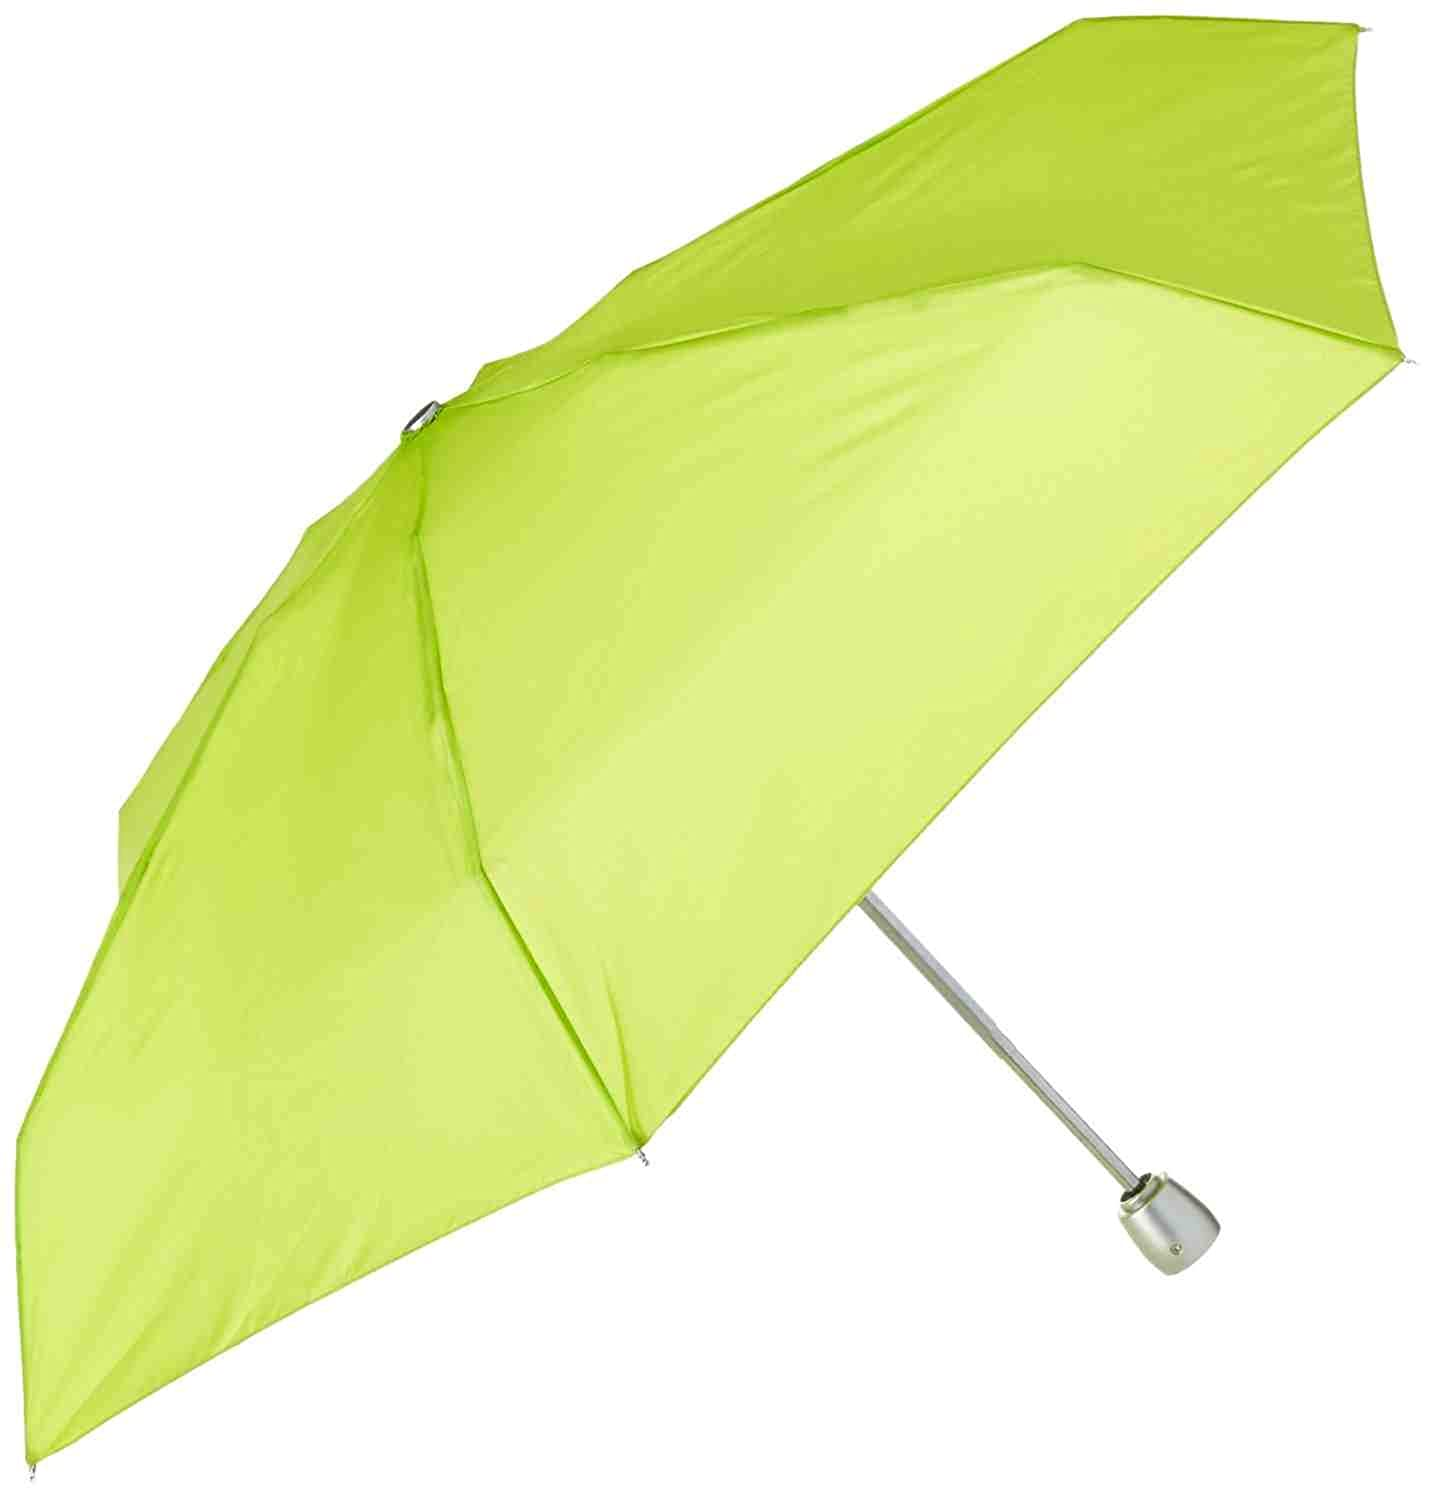 Amazon.com: Raines 10-Ounce Automatic Open Mini Travel Umbrella With 42-inch Coverage, Lime, 3-pack: Garden & Outdoor